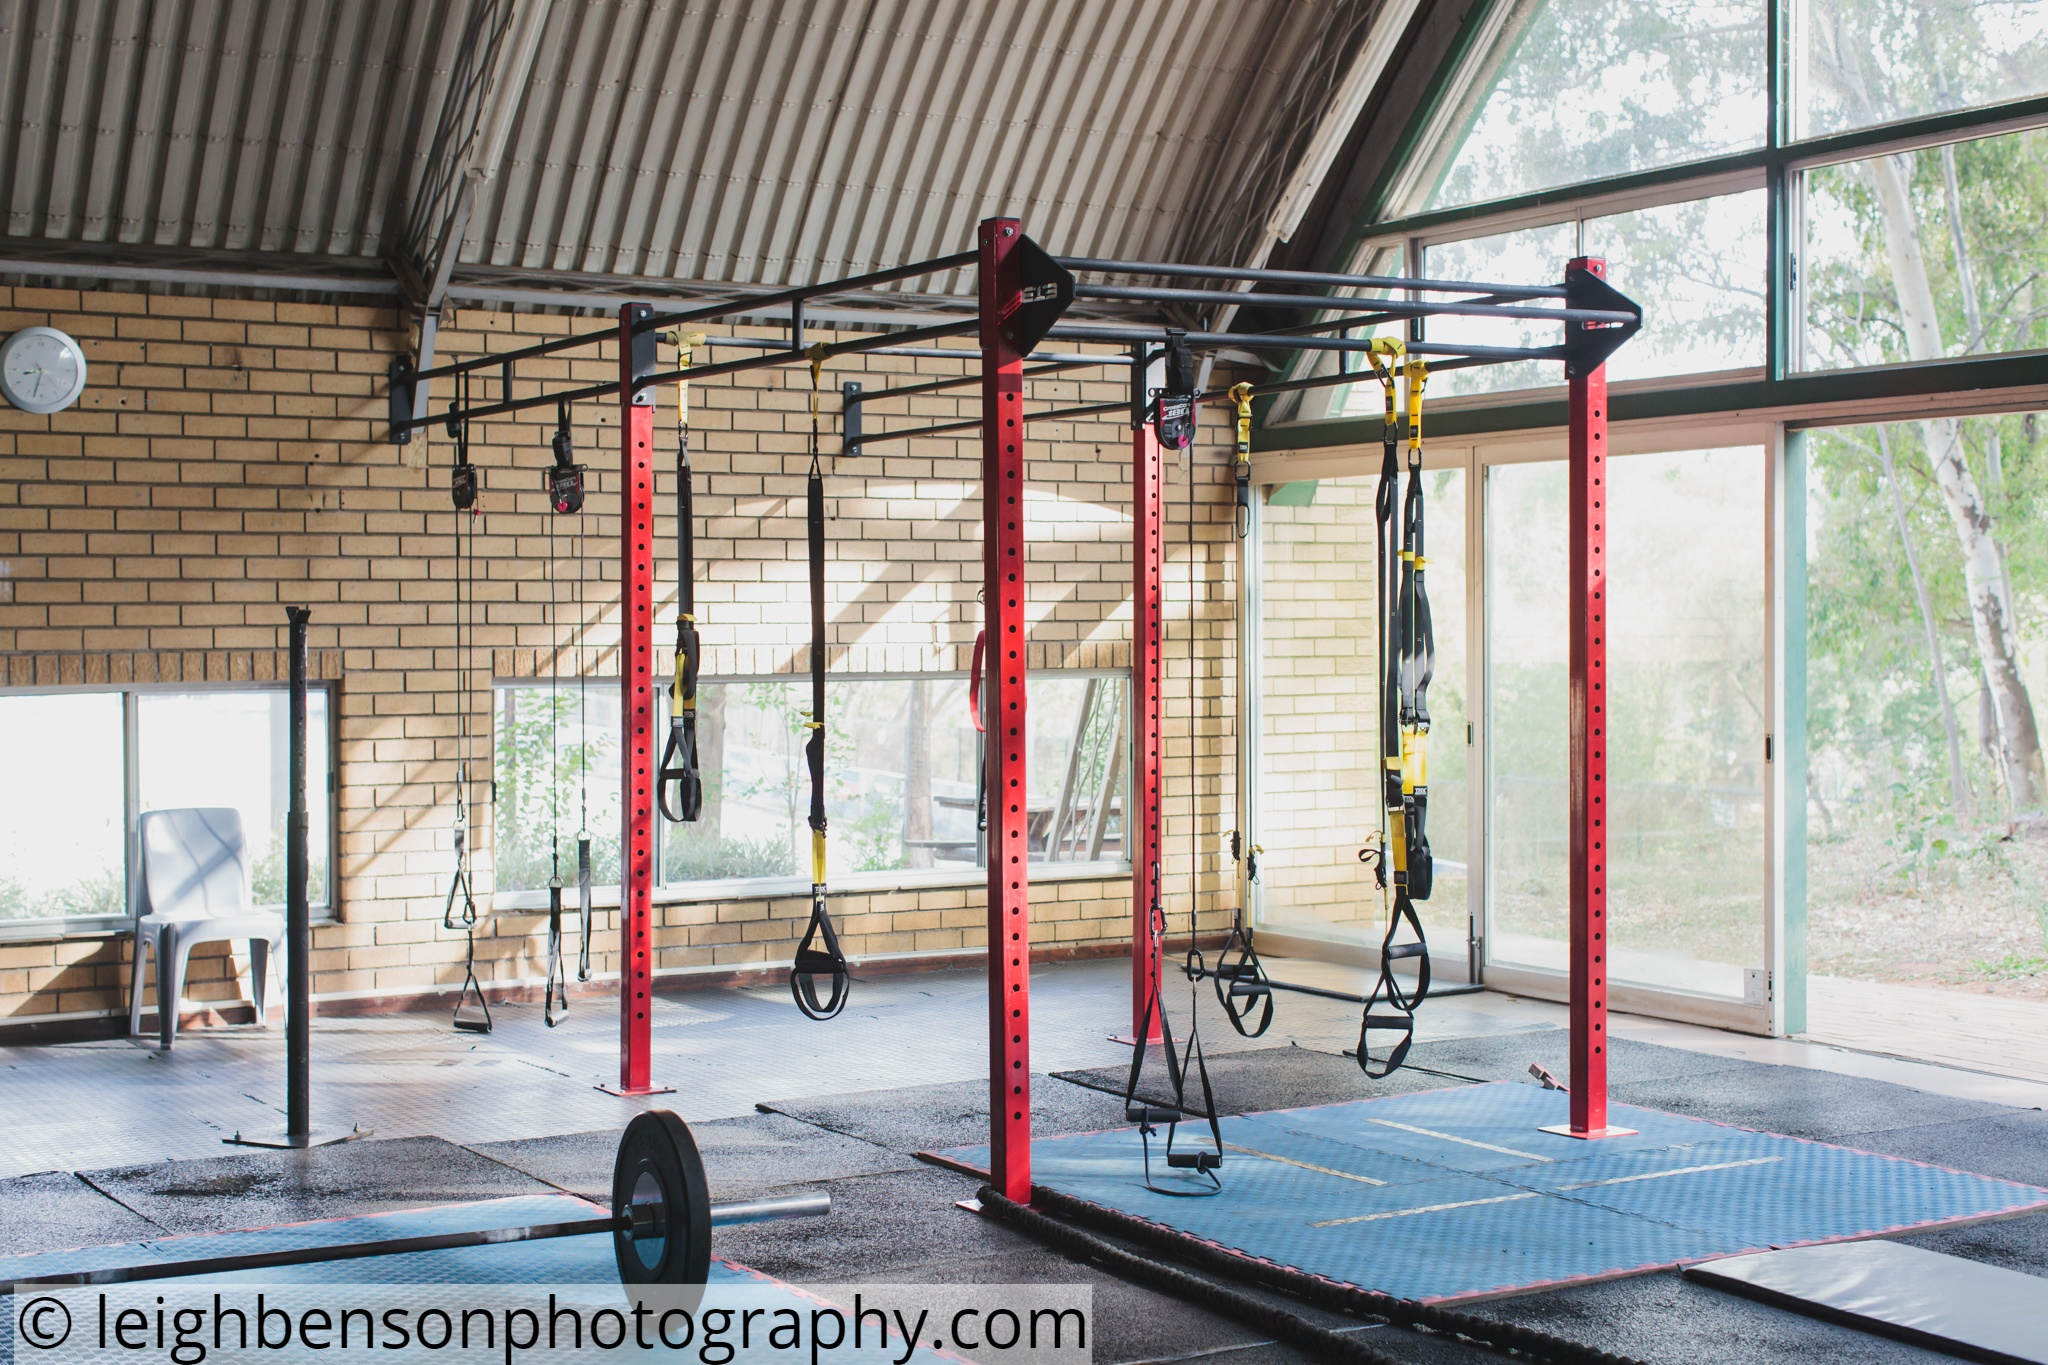 Pirates_Gym-8